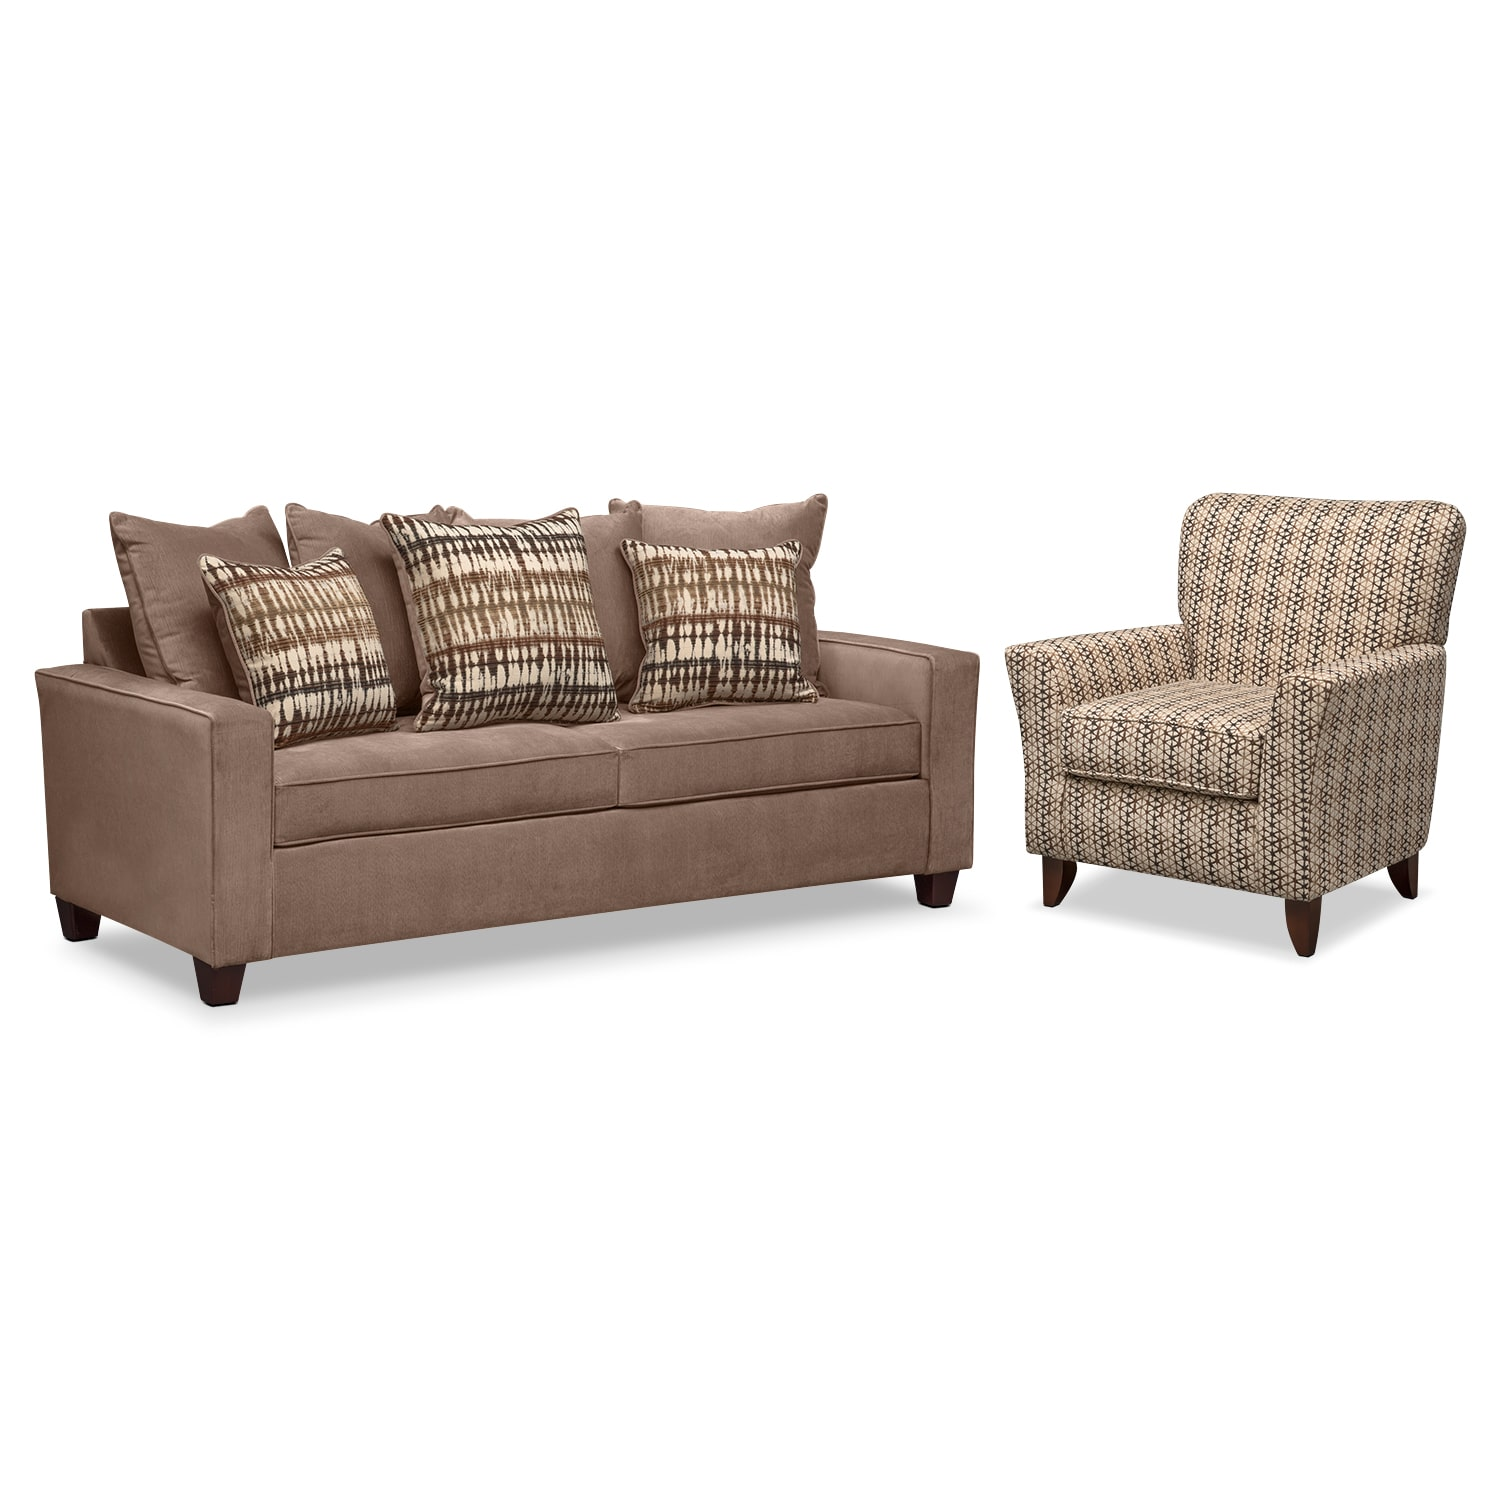 Bryden Sofa and Accent Chair Set - Chocolate